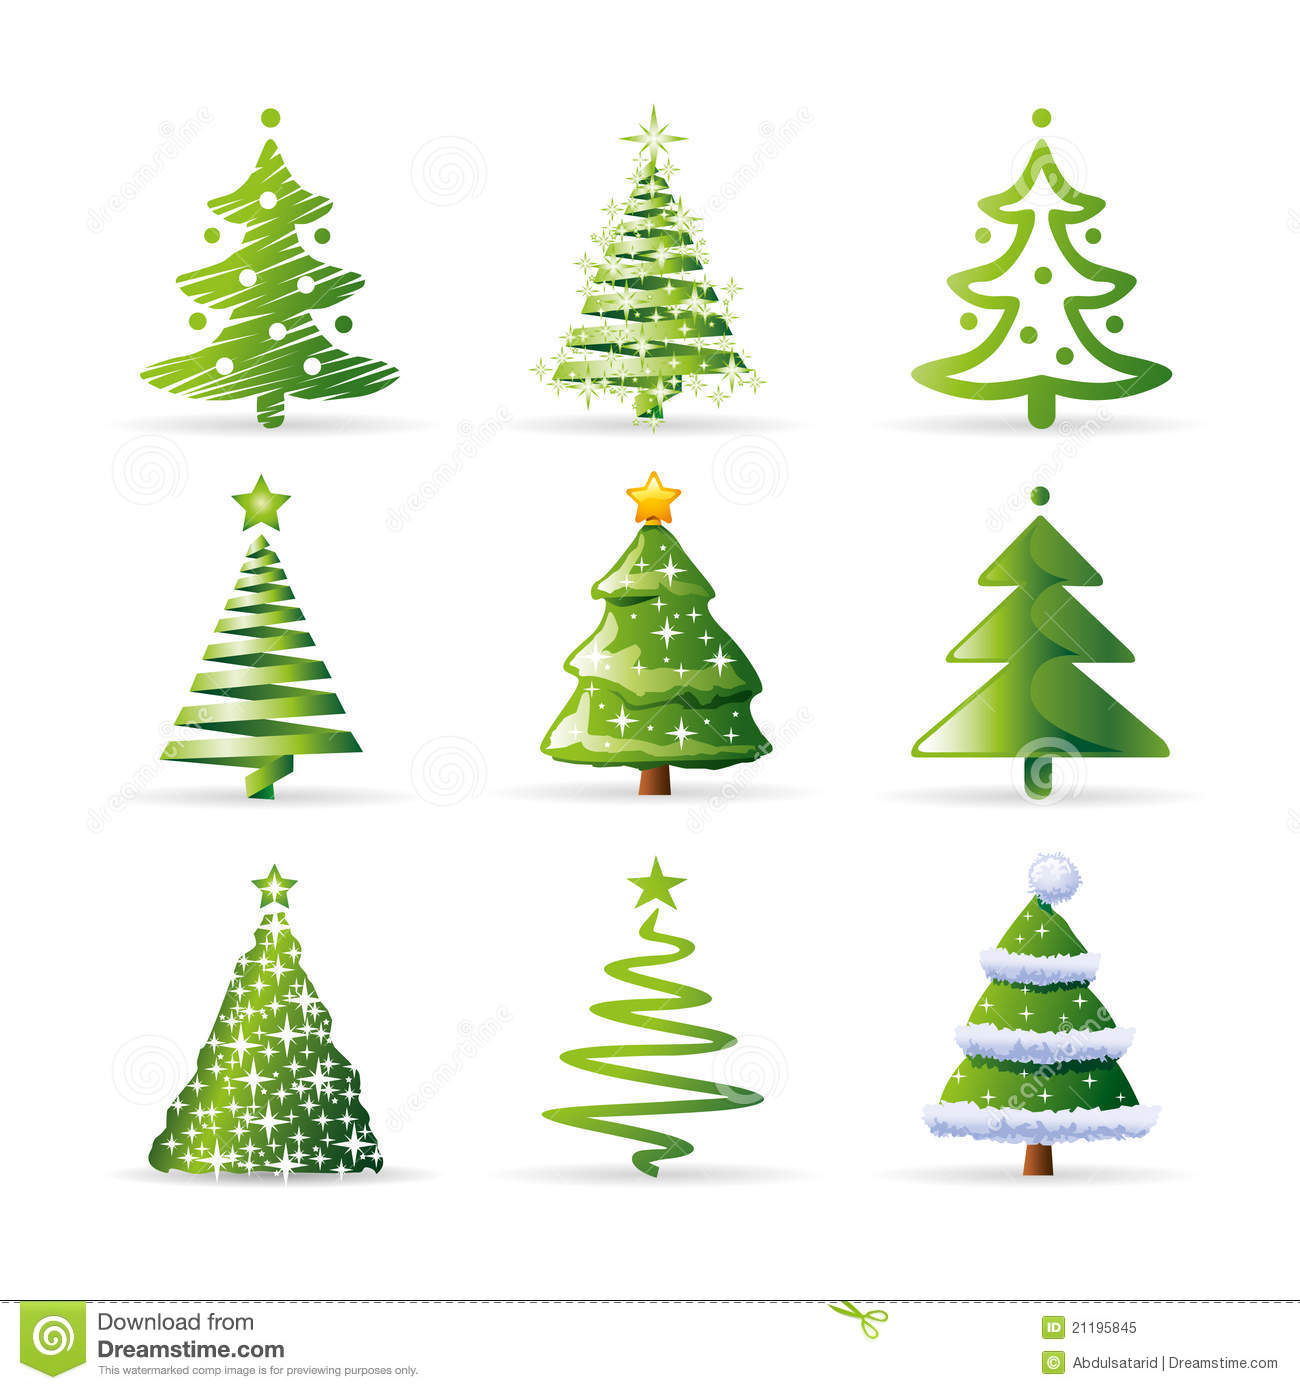 Christmas Tree Collection Trowbridge : Christmas trees collection royalty free stock photo